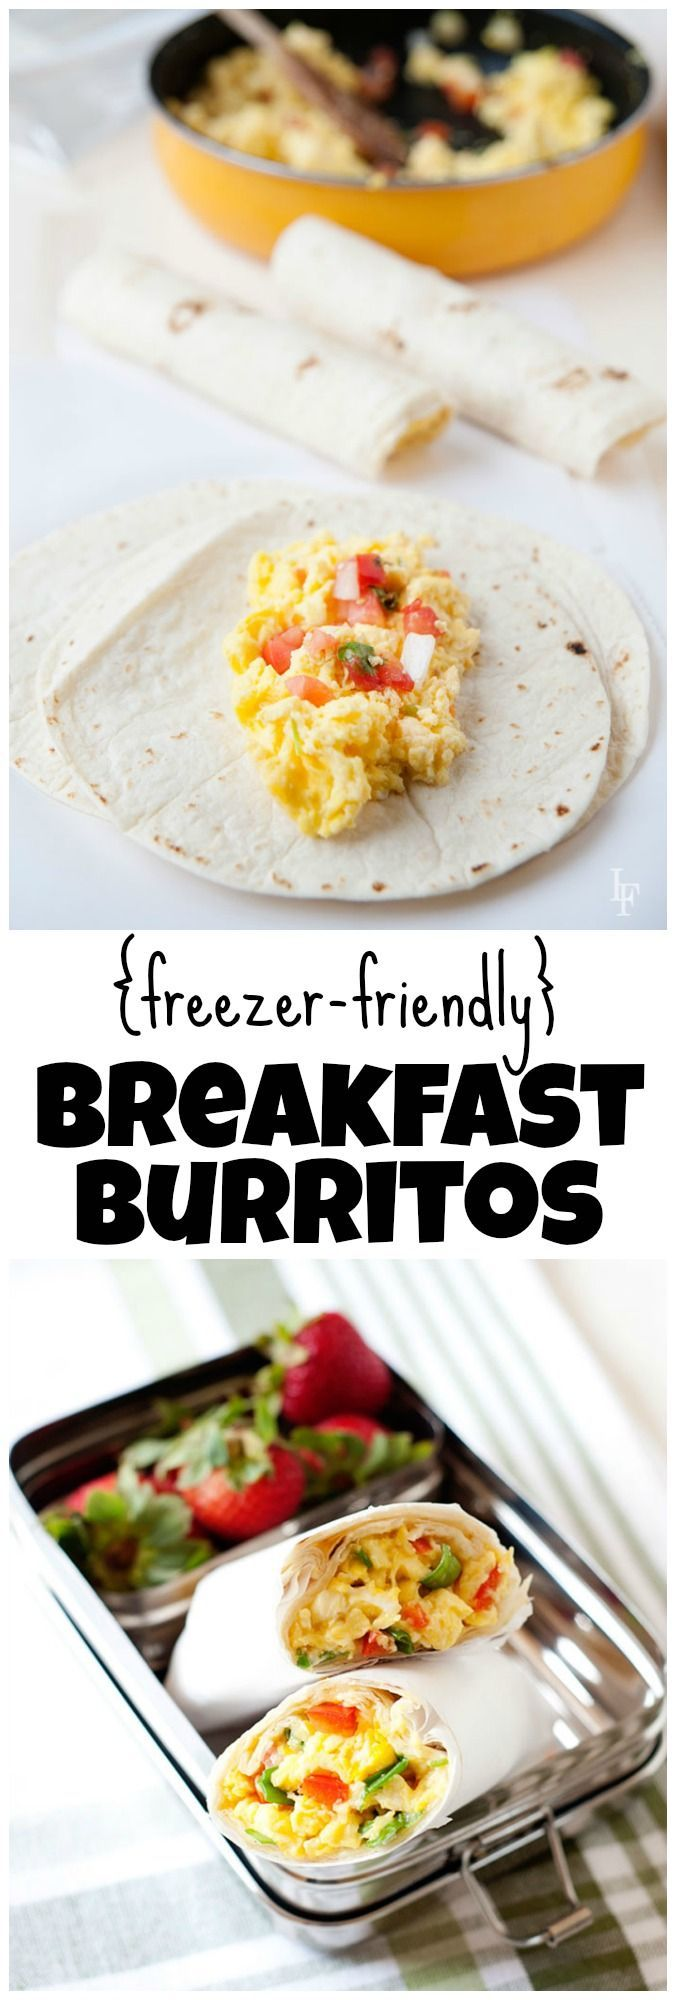 Freezer-Friendly Breakfast Burritos from LauraFuentes.com